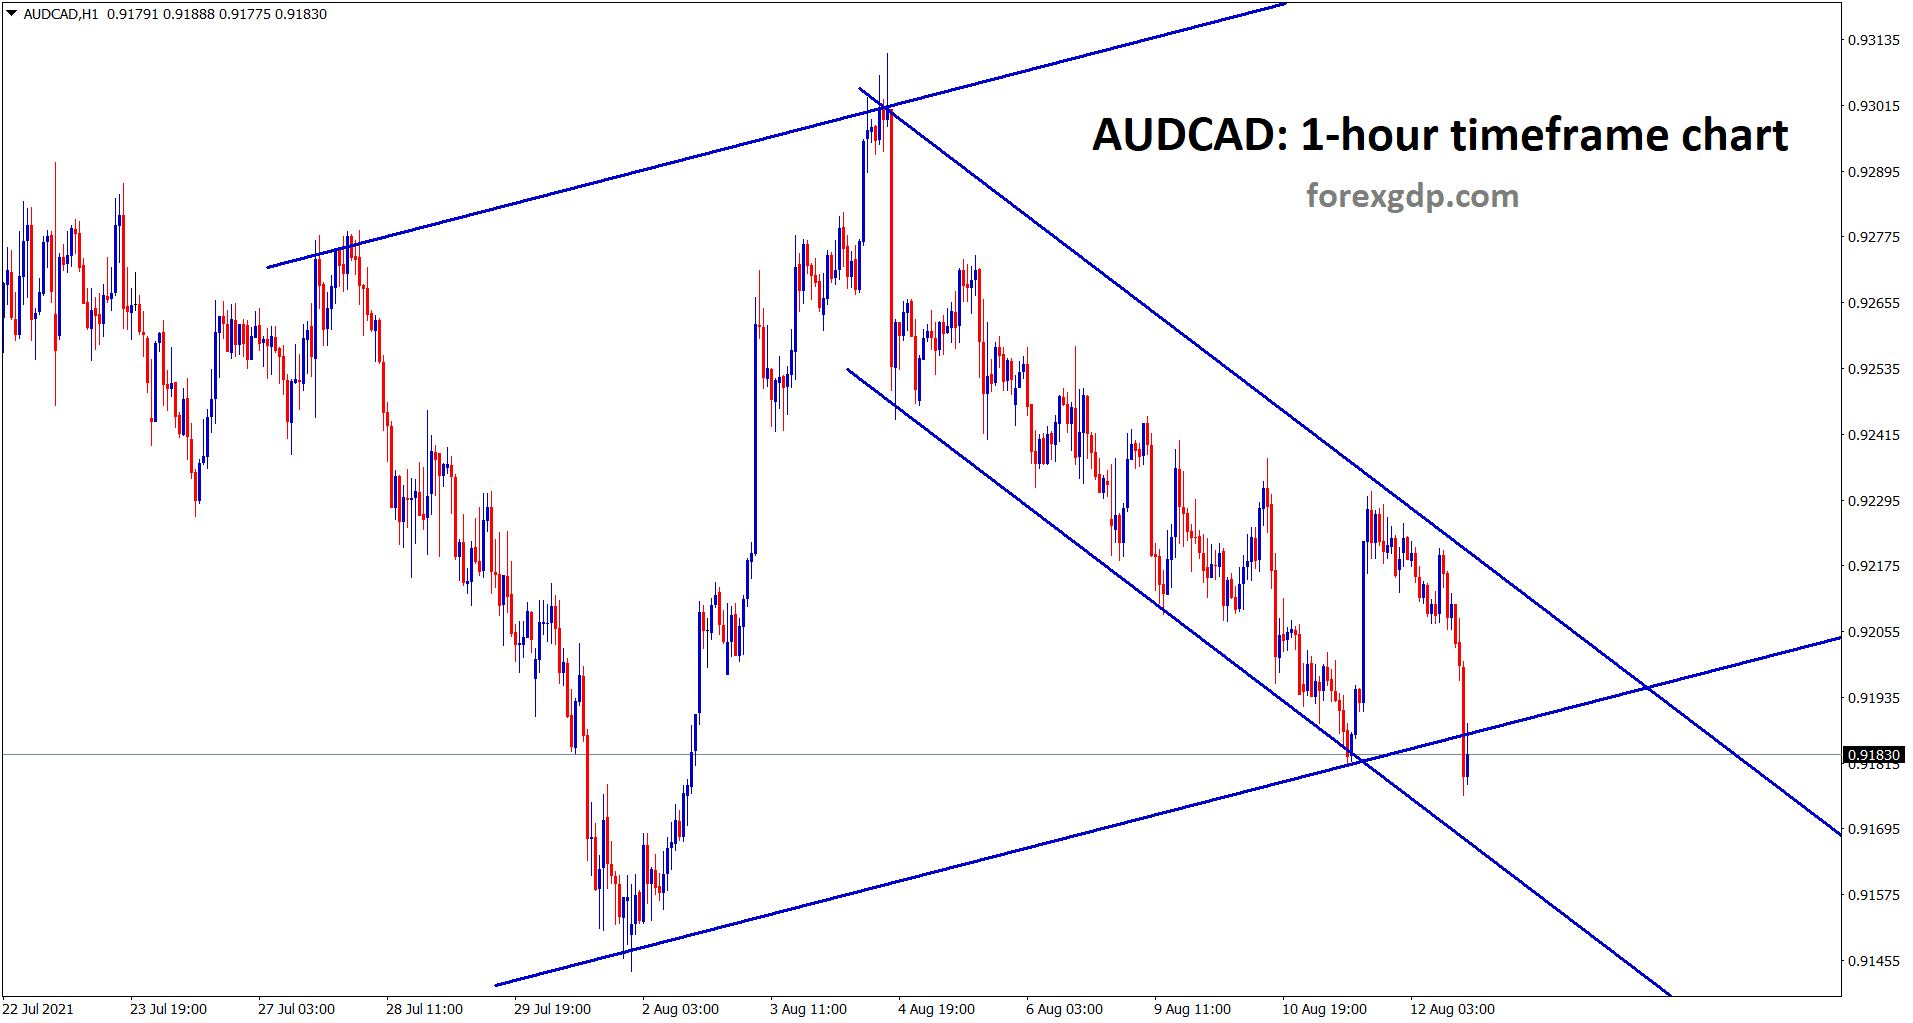 AUDCAD is falling down continously in a descending channel